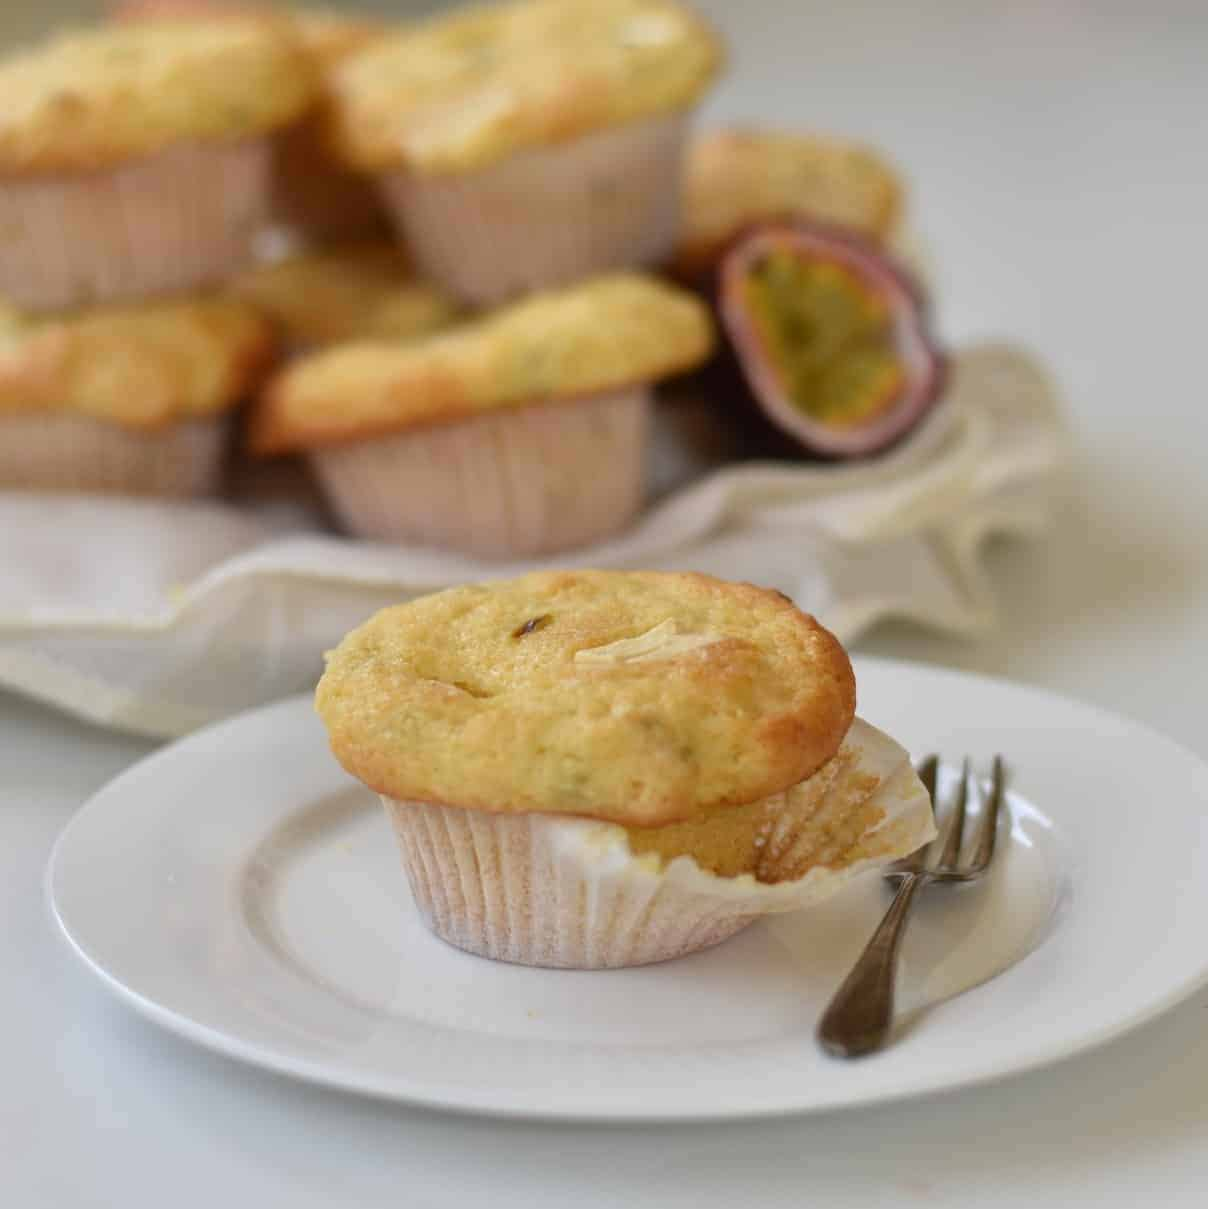 Passionfruit White Chocolate Muffin plated on display.